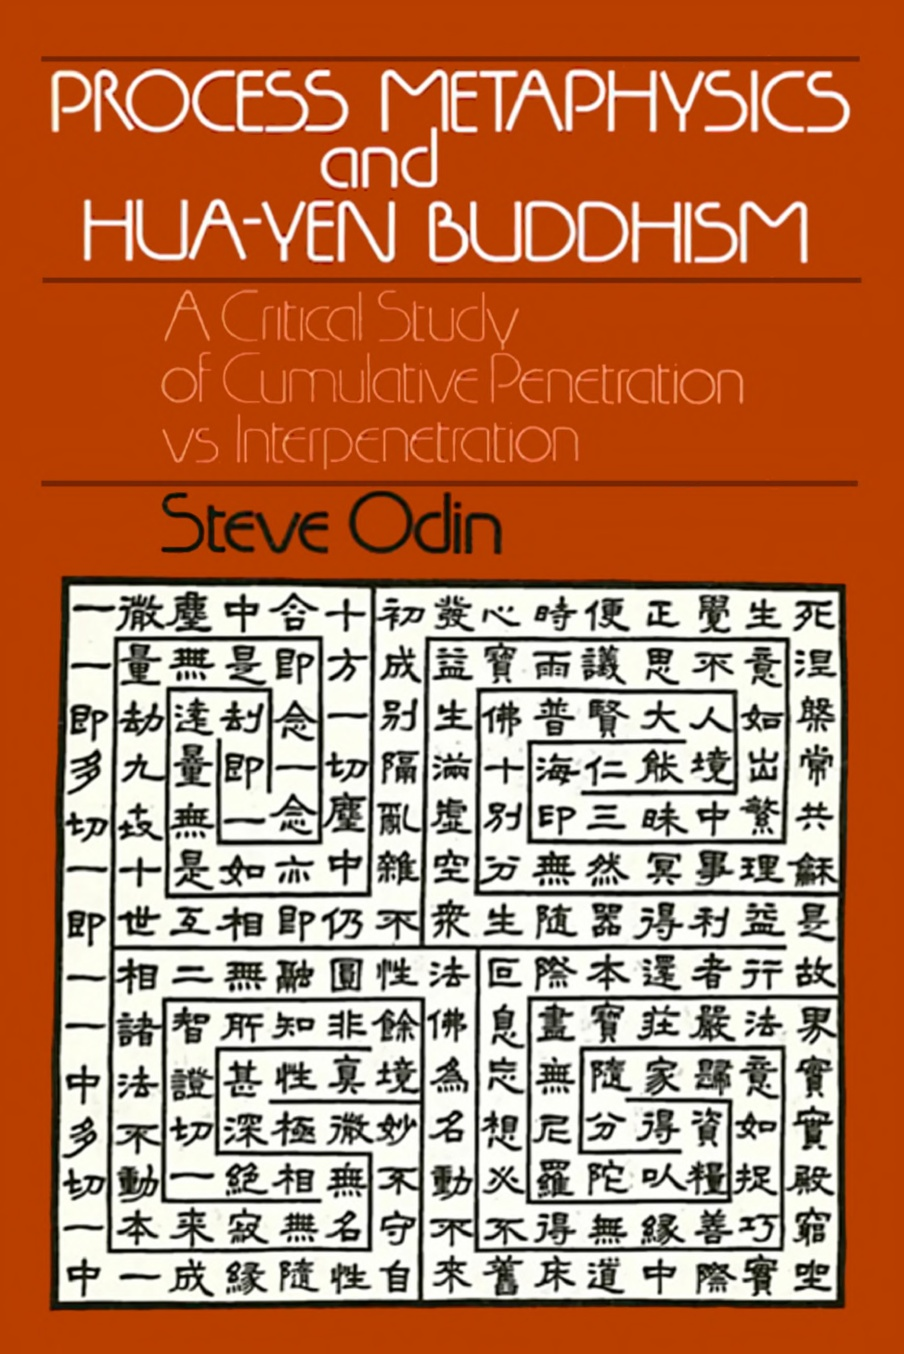 Process Metaphysics and Hua-Yen Buddhism